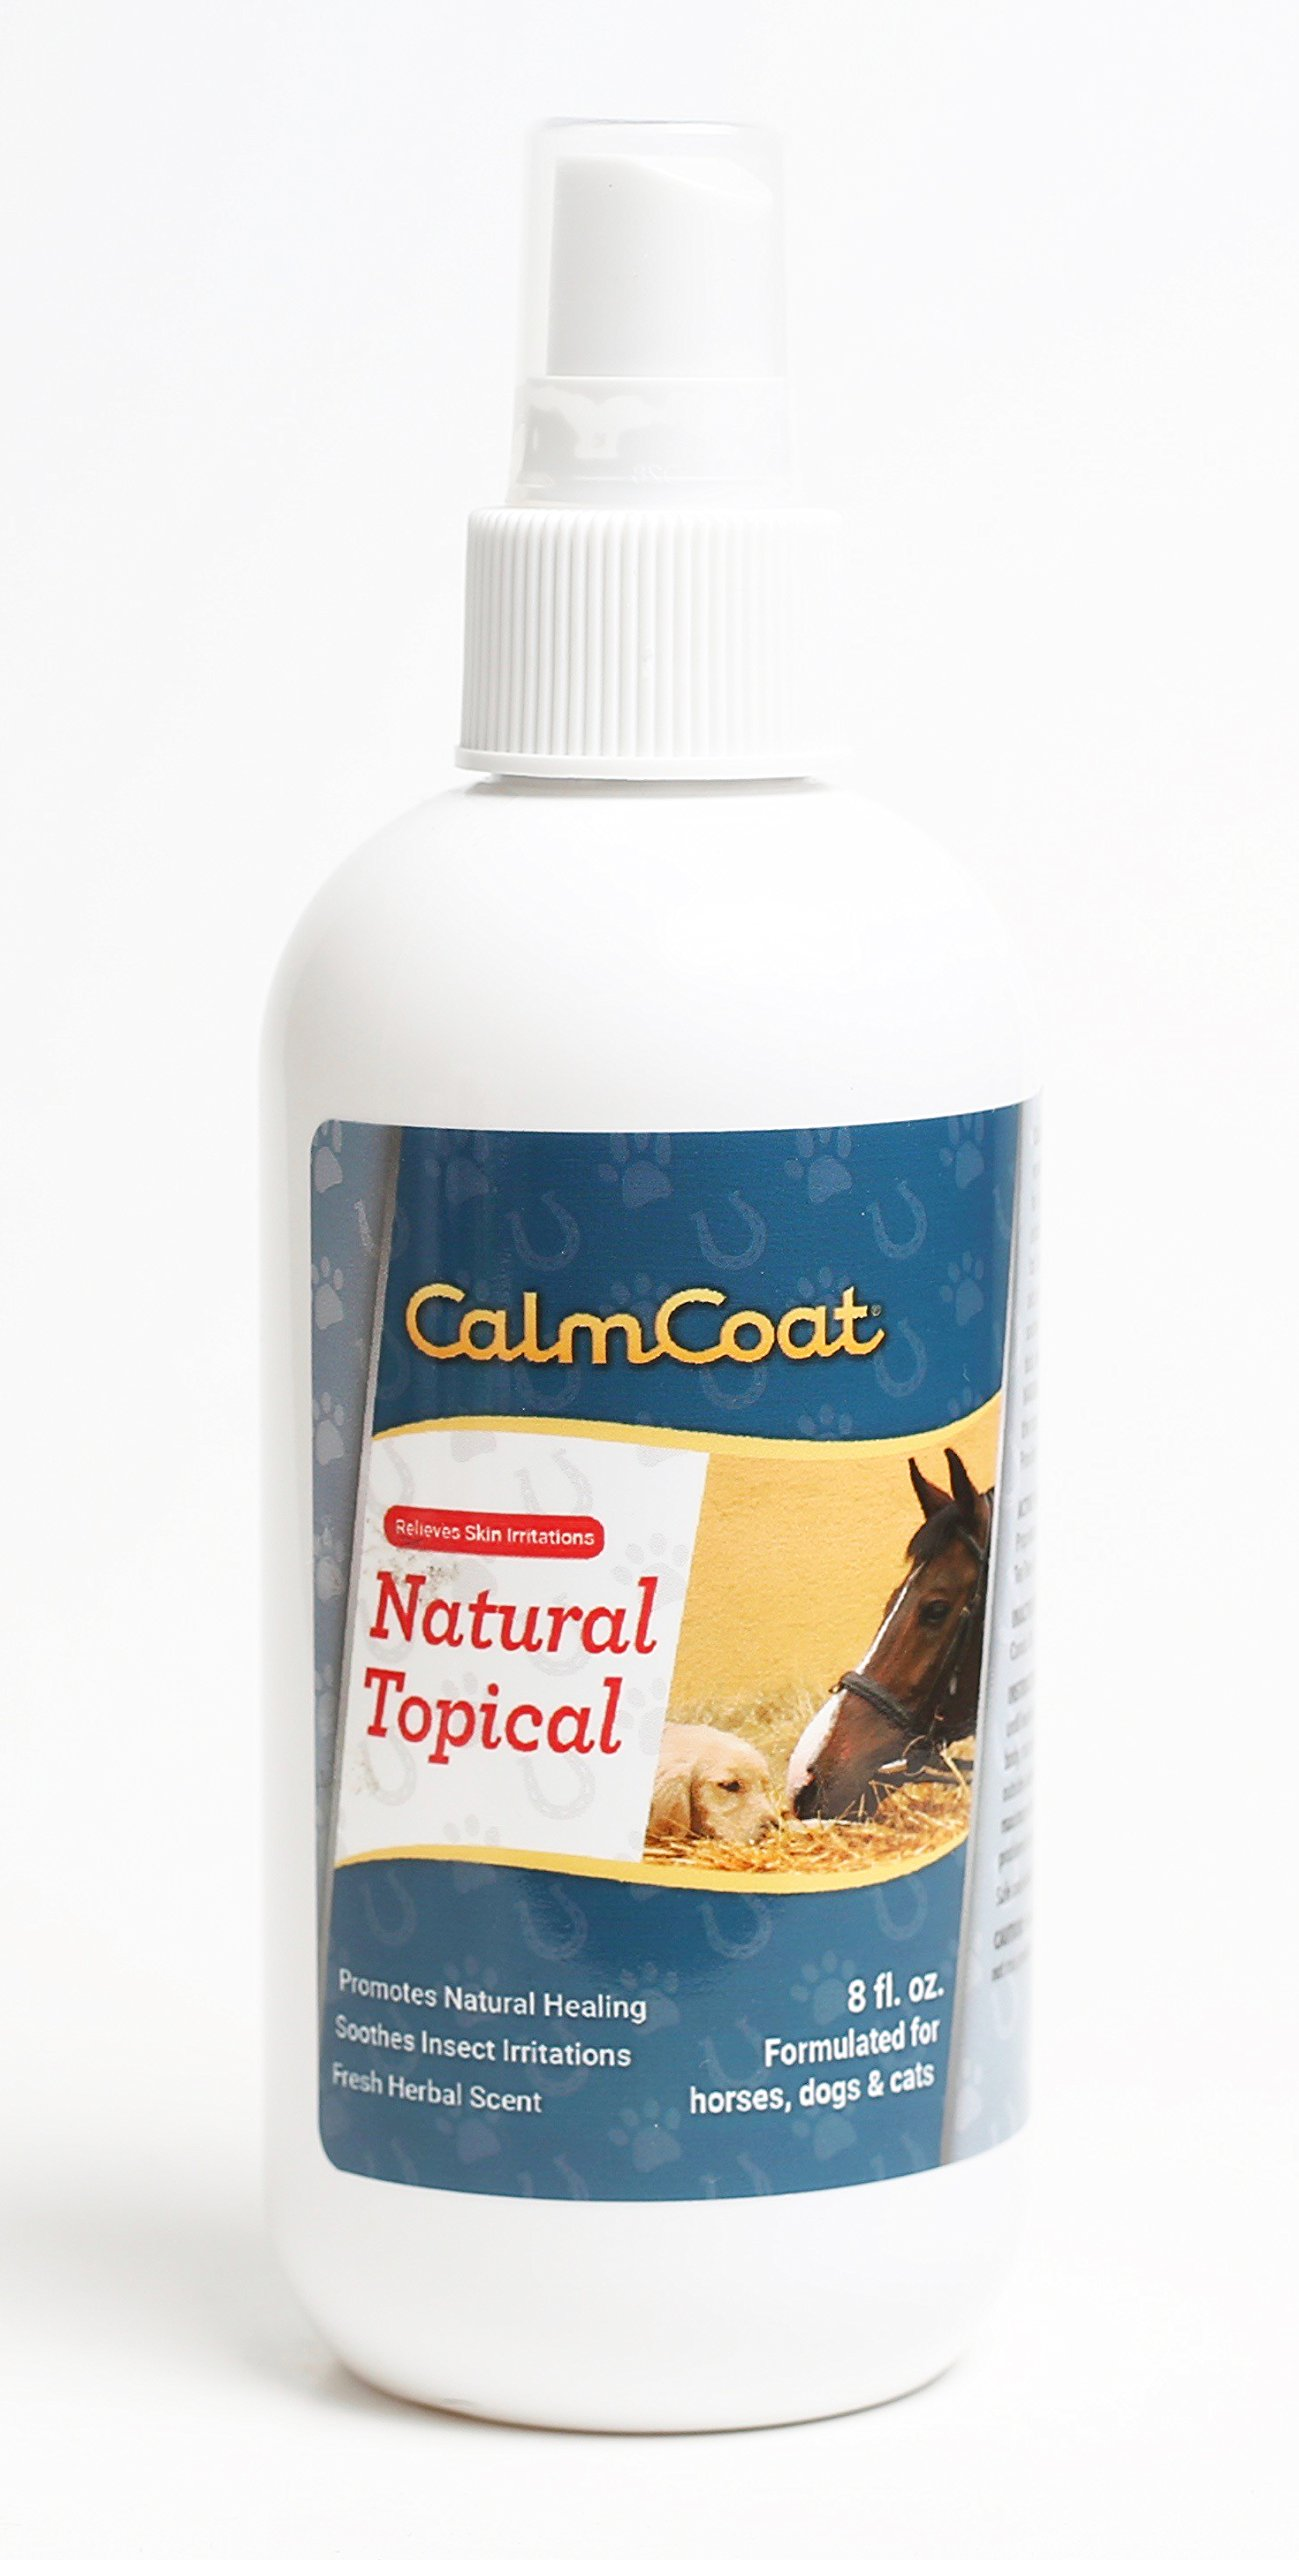 Calm Coat Natural Topical for Horses Dogs & Cats - Natural Oils to Promote Healing & Skin Relief for Irritations - for Cuts, Itchy Hot Spots, Bug Bites - Herbal Scent 8 oz by Calm Coat